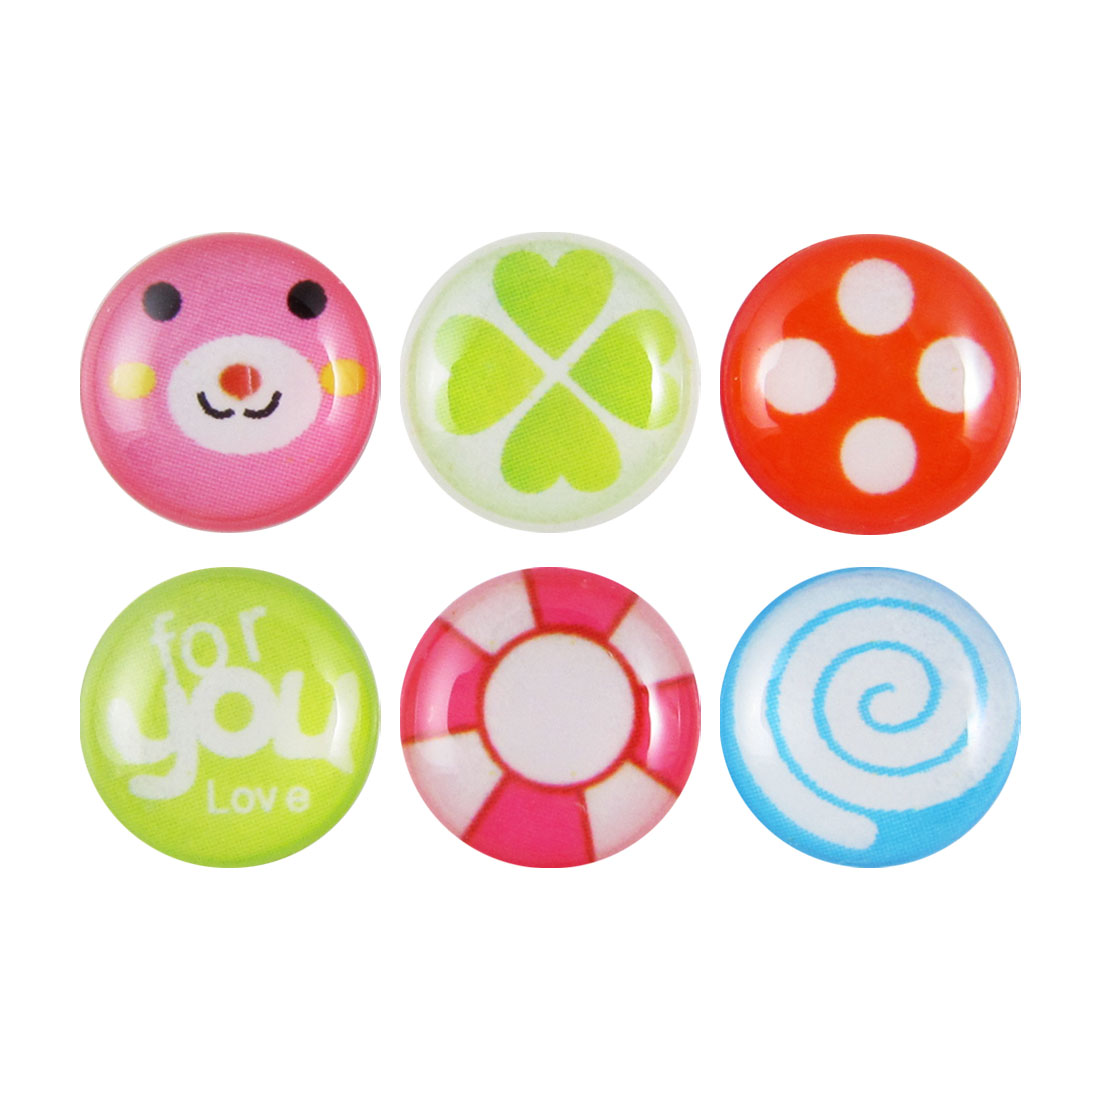 Dots Heart Spiral Home Button Stickers 6 in 1 for Cell Phone